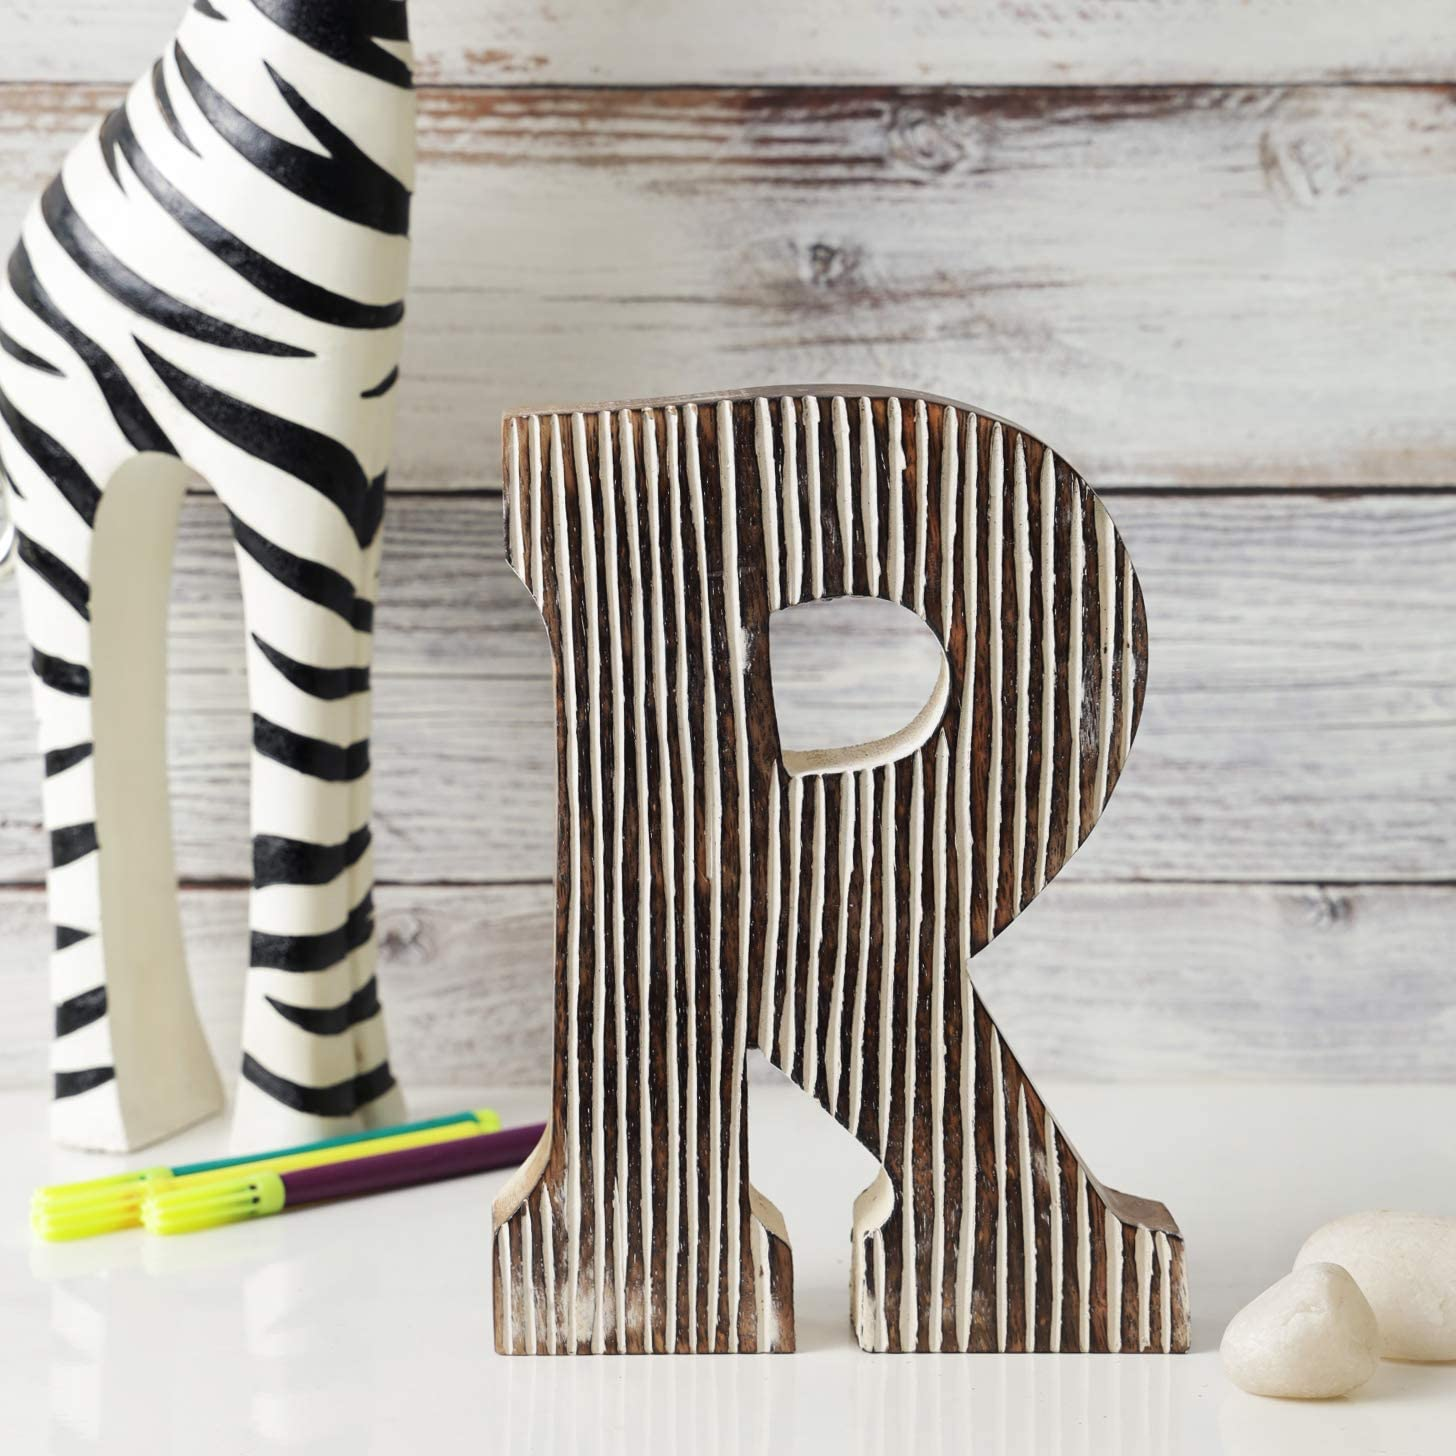 Handmade Wood Letters Alphabet Wall Décor/Free Standing Shelf Tabletop Monogram Wooden Blocks Rustic Letters for Coffee Bar Apartment Bedroom Home Initials Childrens Bedroom Wedding Party Home Decor